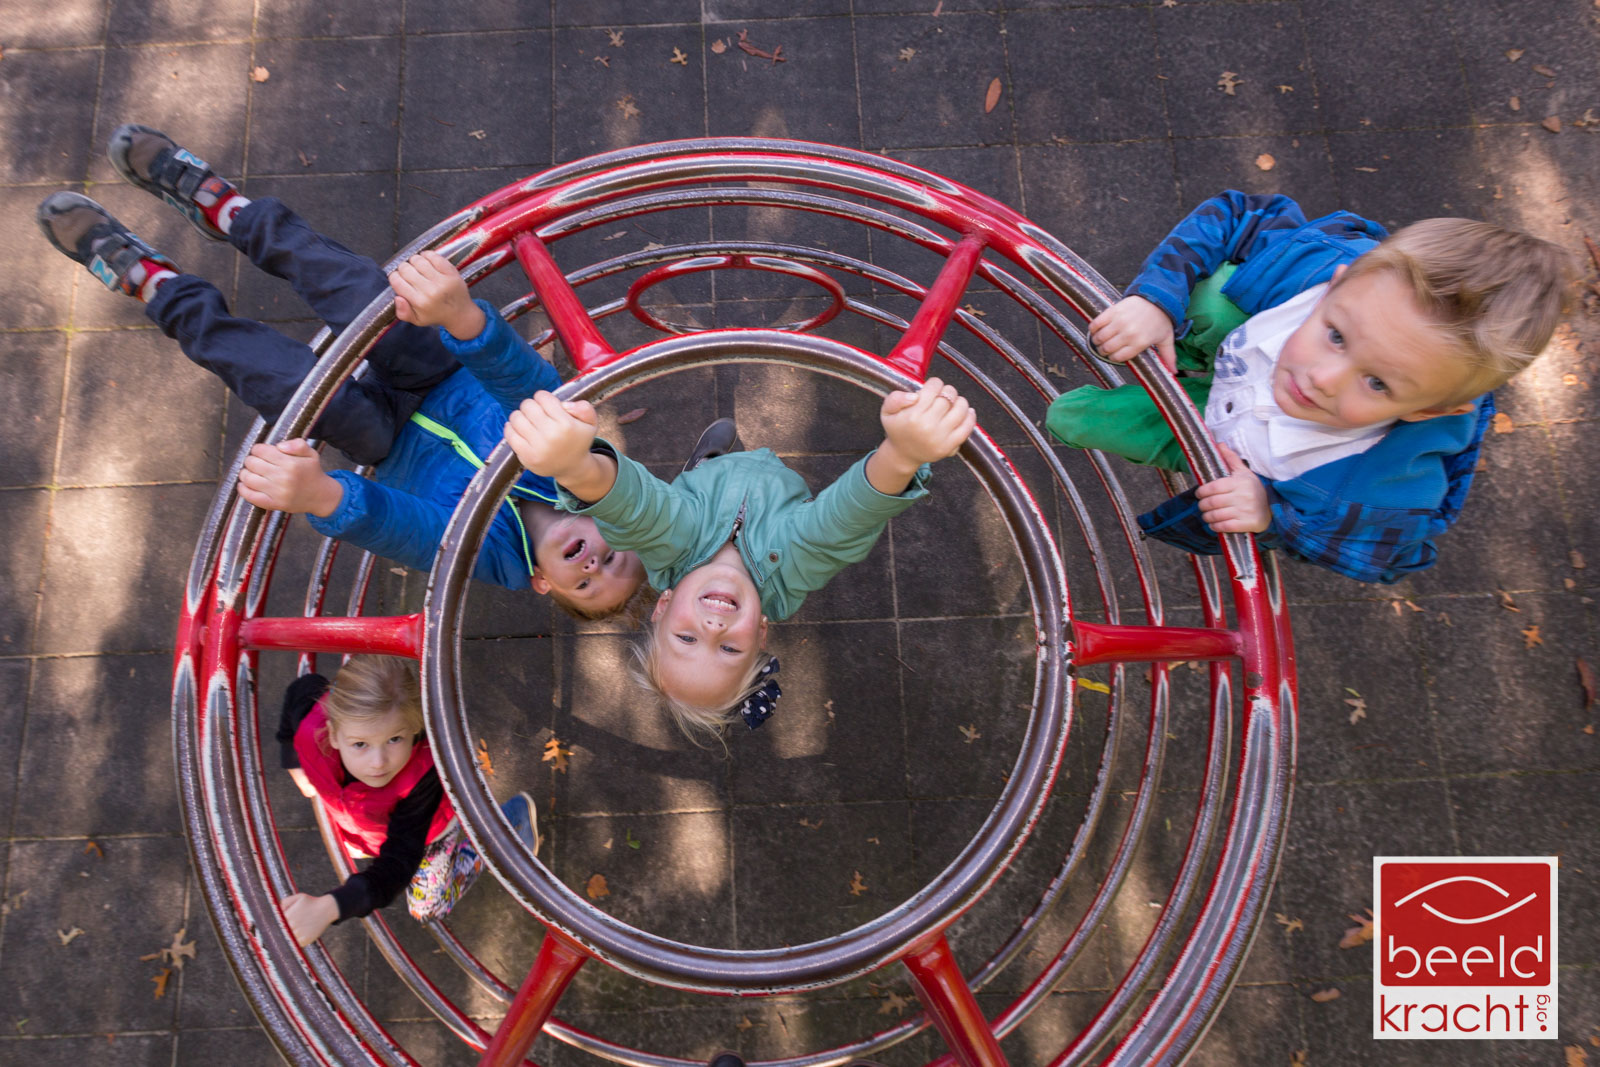 Children playing on a climbing frame from a bird perspective.